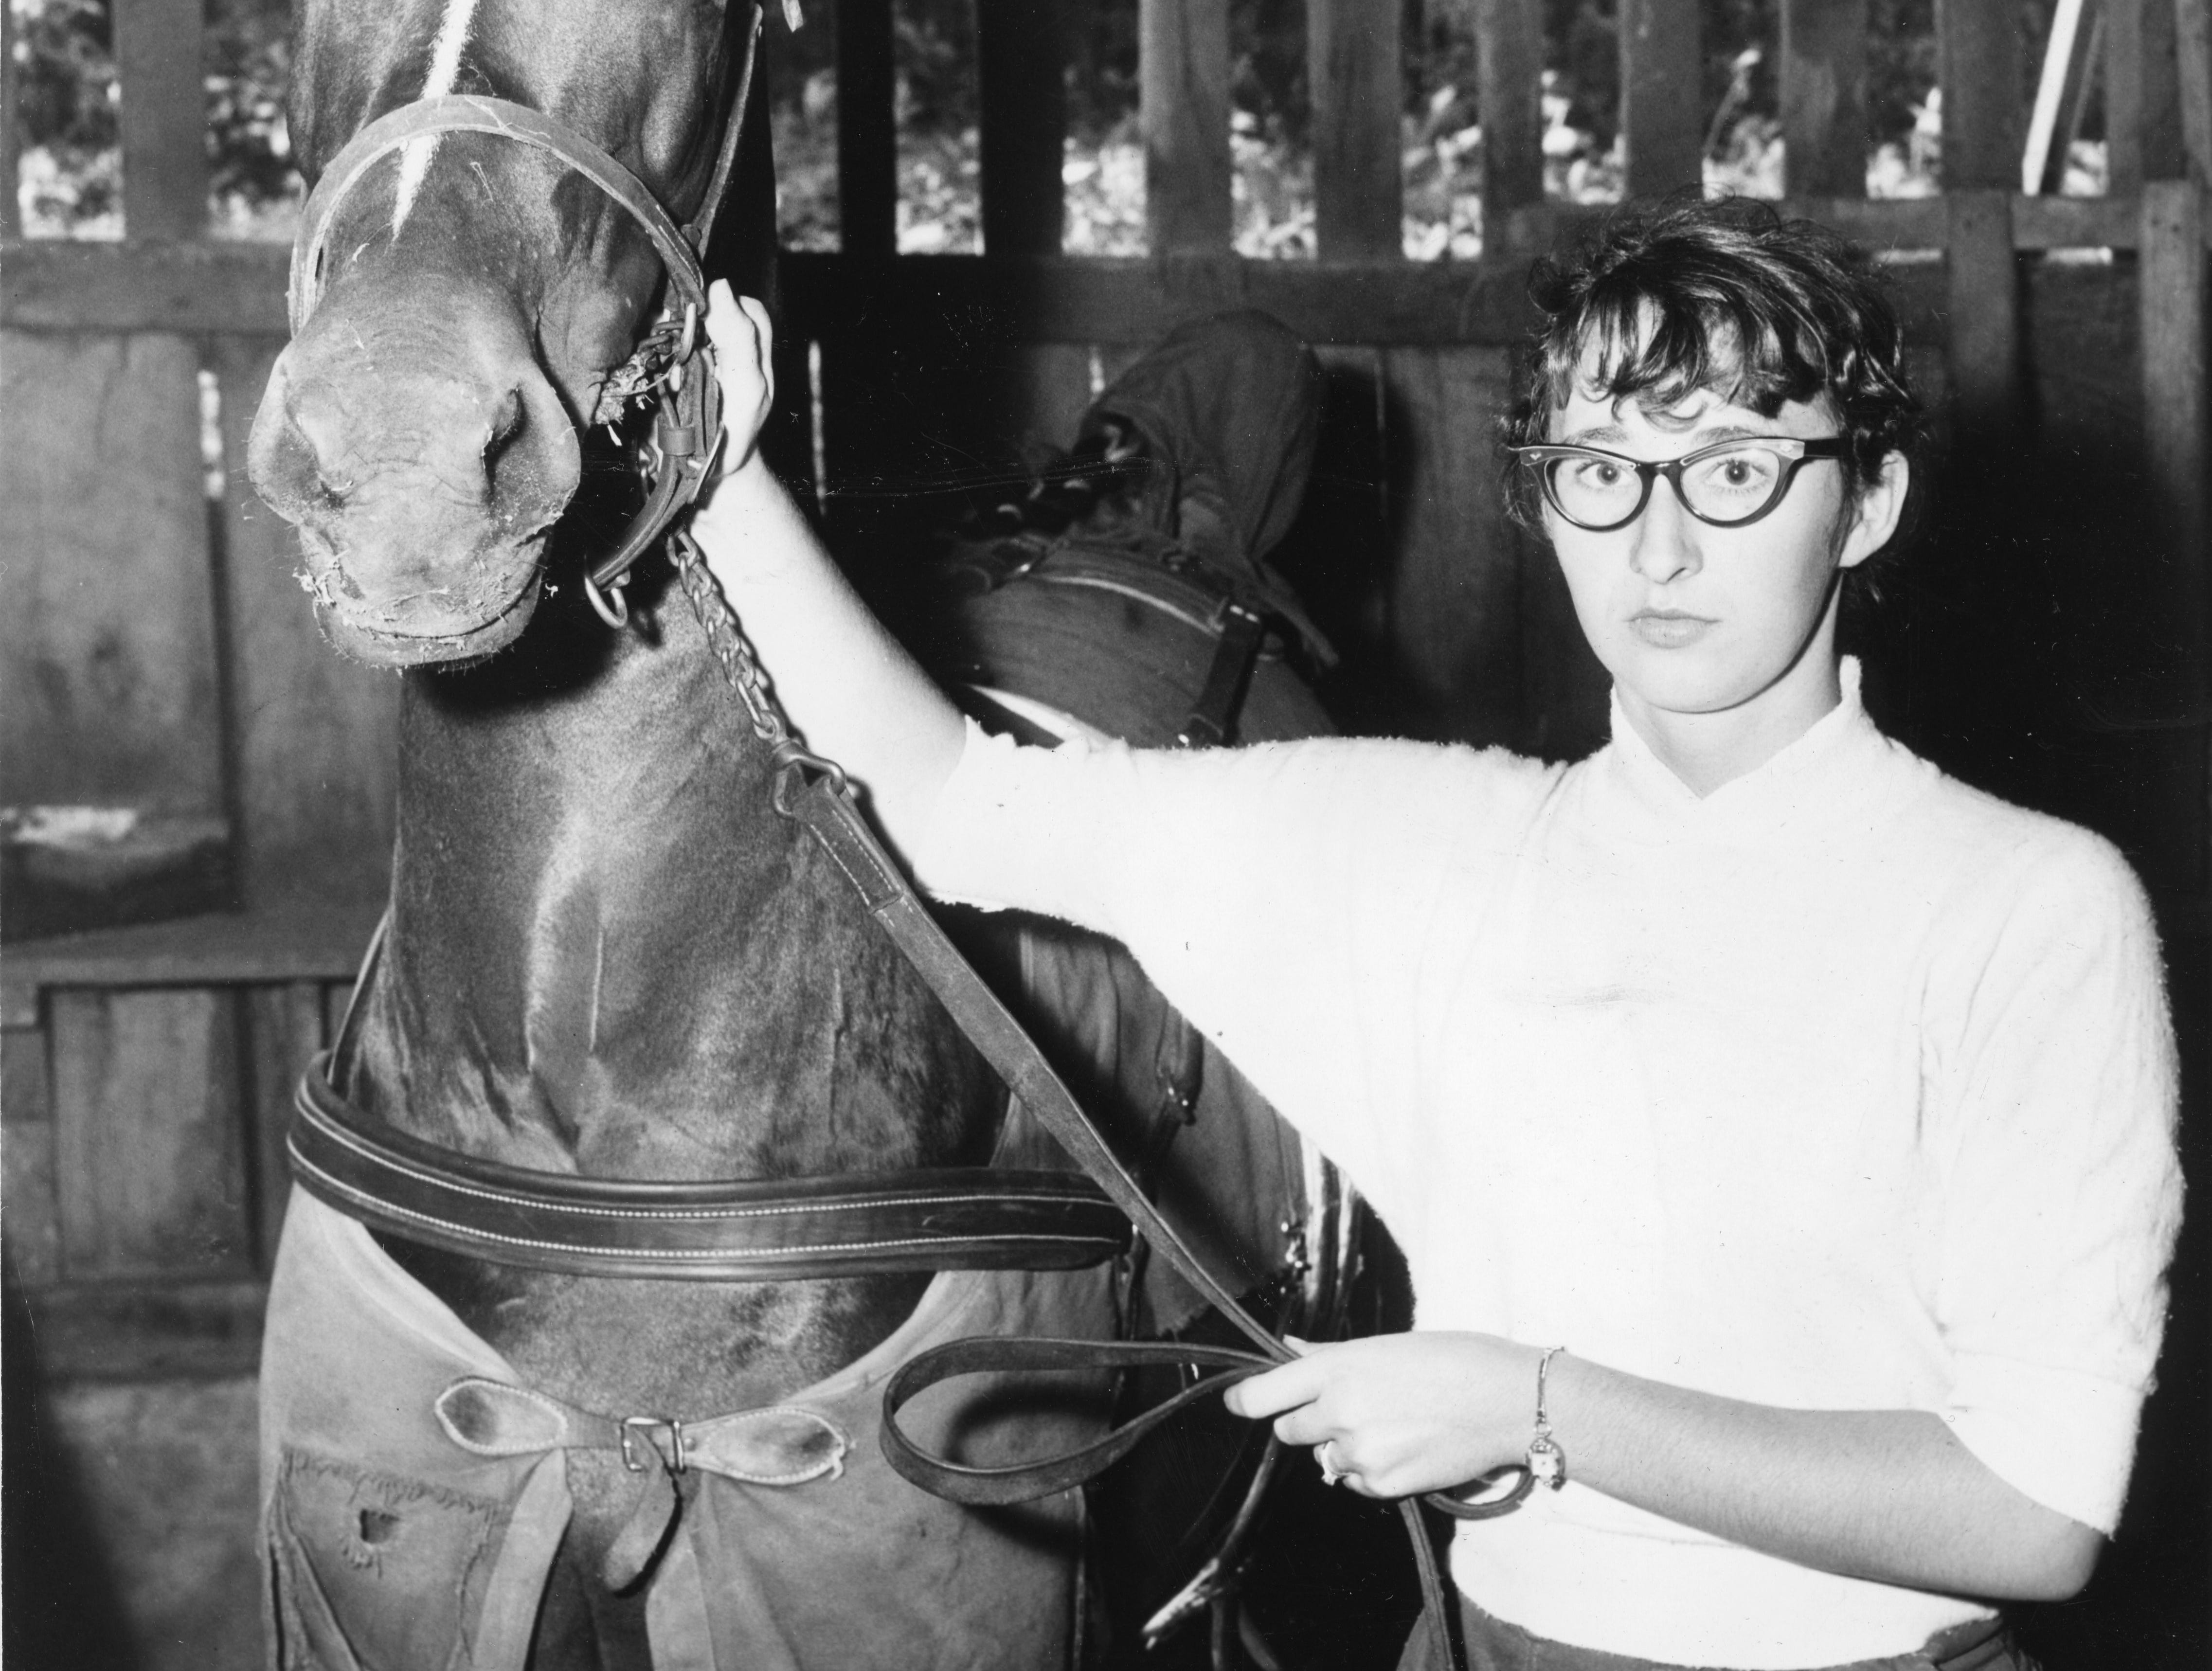 Mrs. J. B. Borden, of Maryville, and her horse Rockee's Glory, at the Tennessee Valley Fair on September 13, 1956.